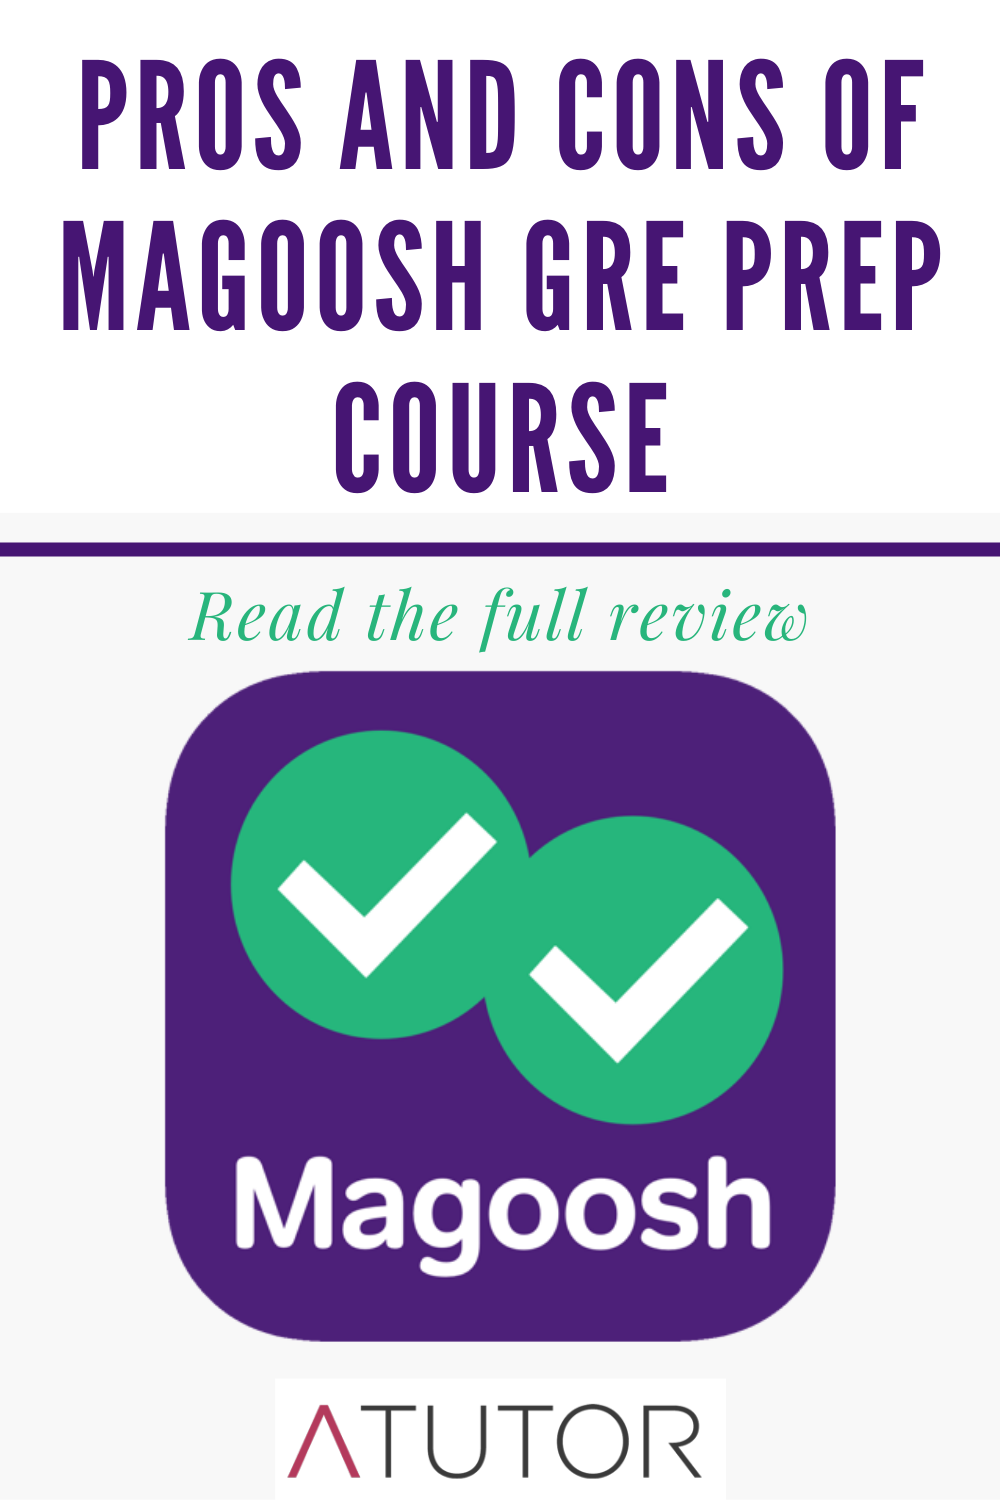 pros and cons of magoosh gre